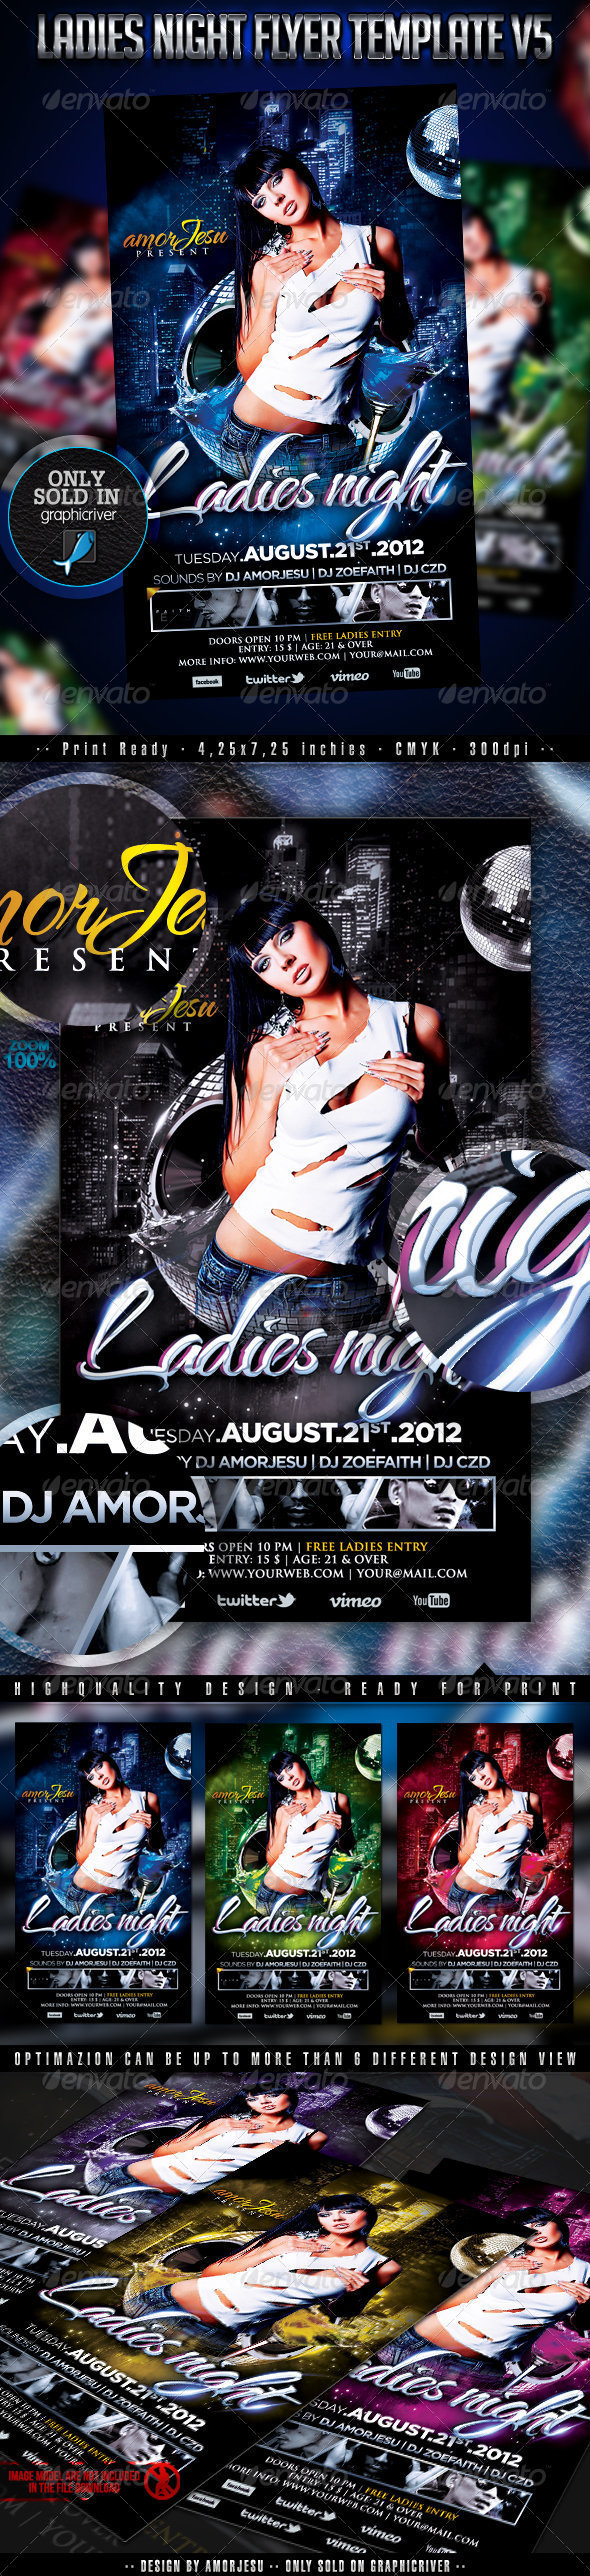 Ladies Night Flyer Template V5 - Clubs & Parties Events